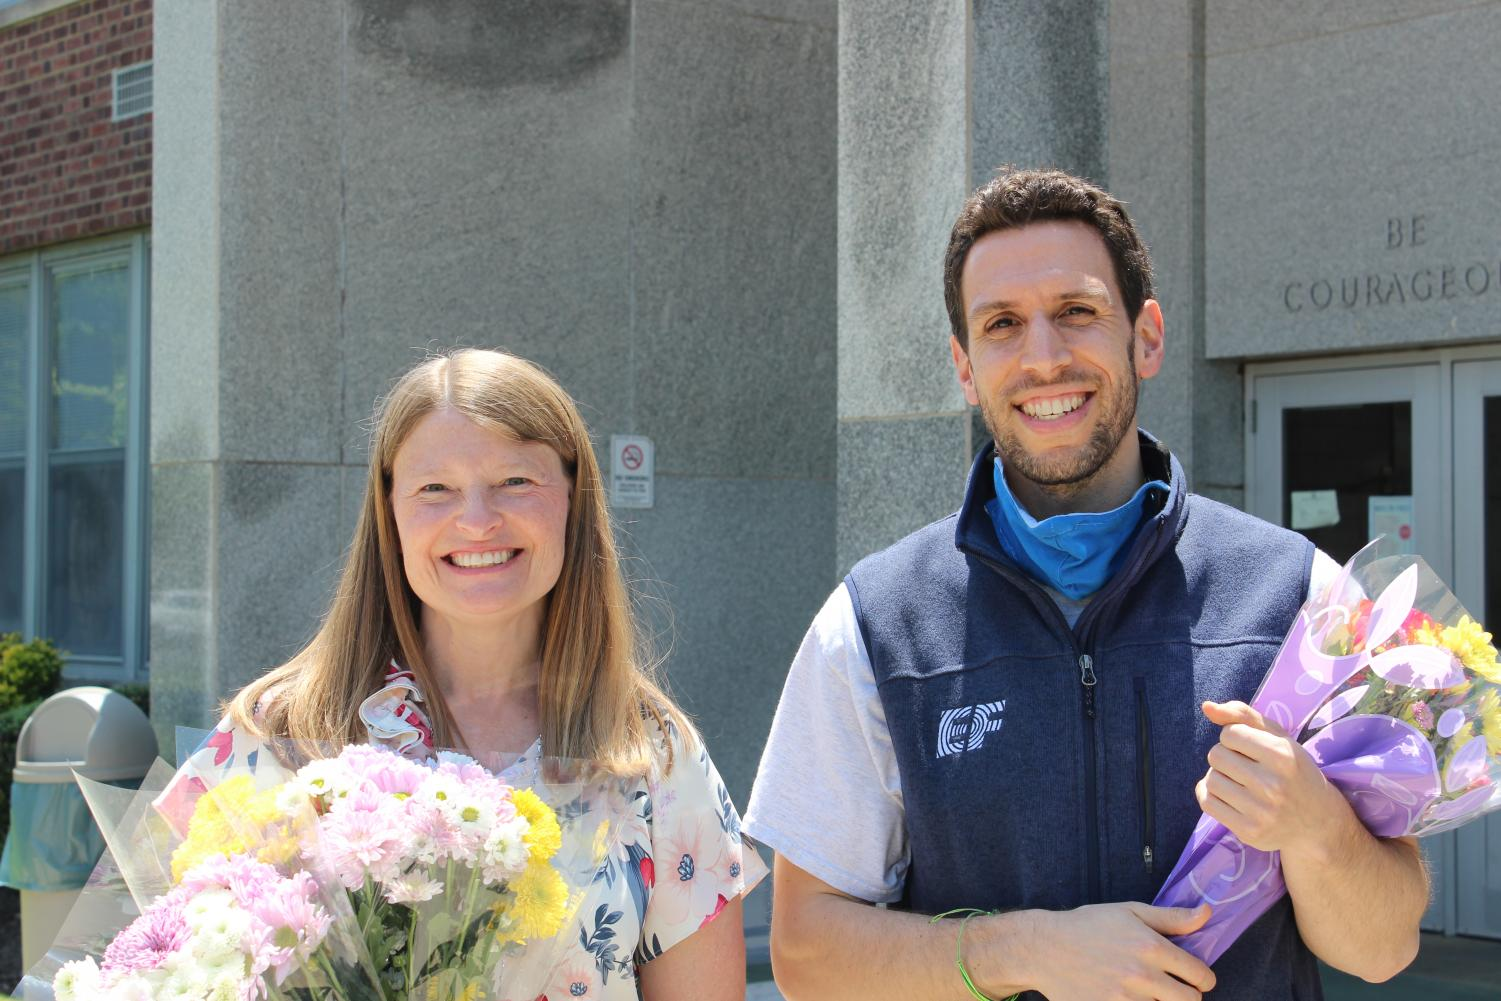 """The EIS """"Teacher Of The Year"""" awarded to Mr. Lazarow and Mrs. Swenson"""